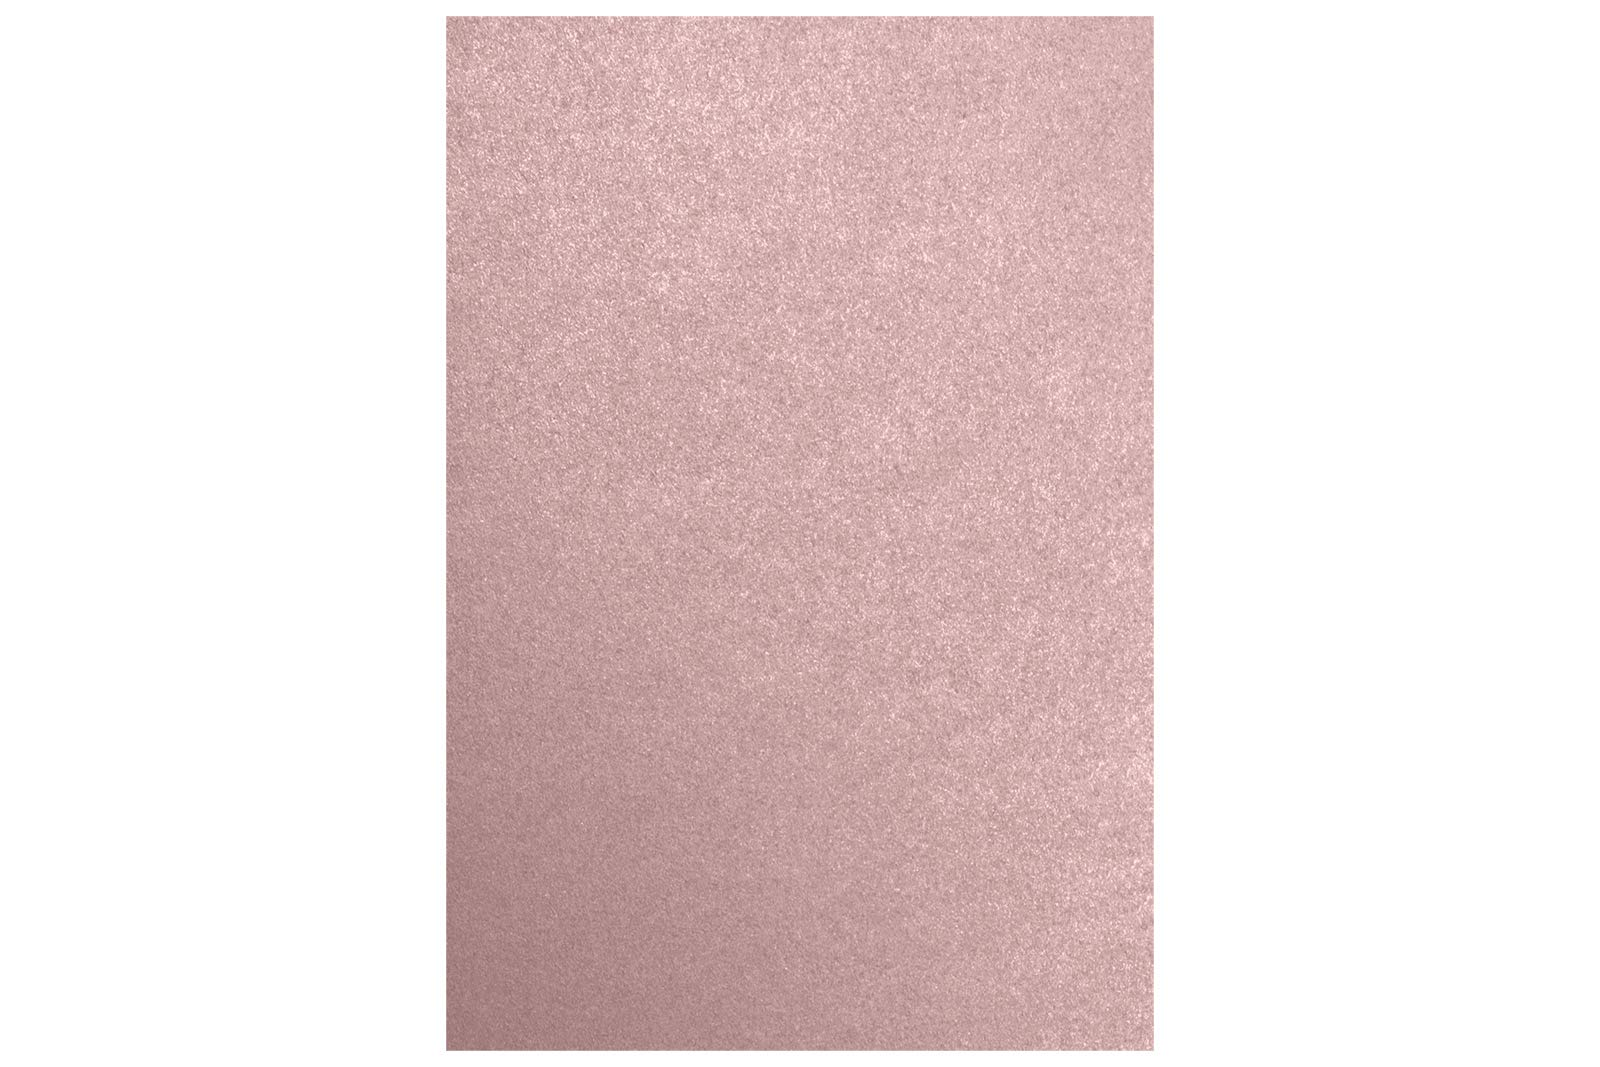 13 x 19 Cardstock - Misty Rose Metallic - Sirio Pearl (50 Qty.) | Perfect for Holiday Crafting, Invitations, Scrapbooking, Cards and so much more! | 1319-C-M203-50